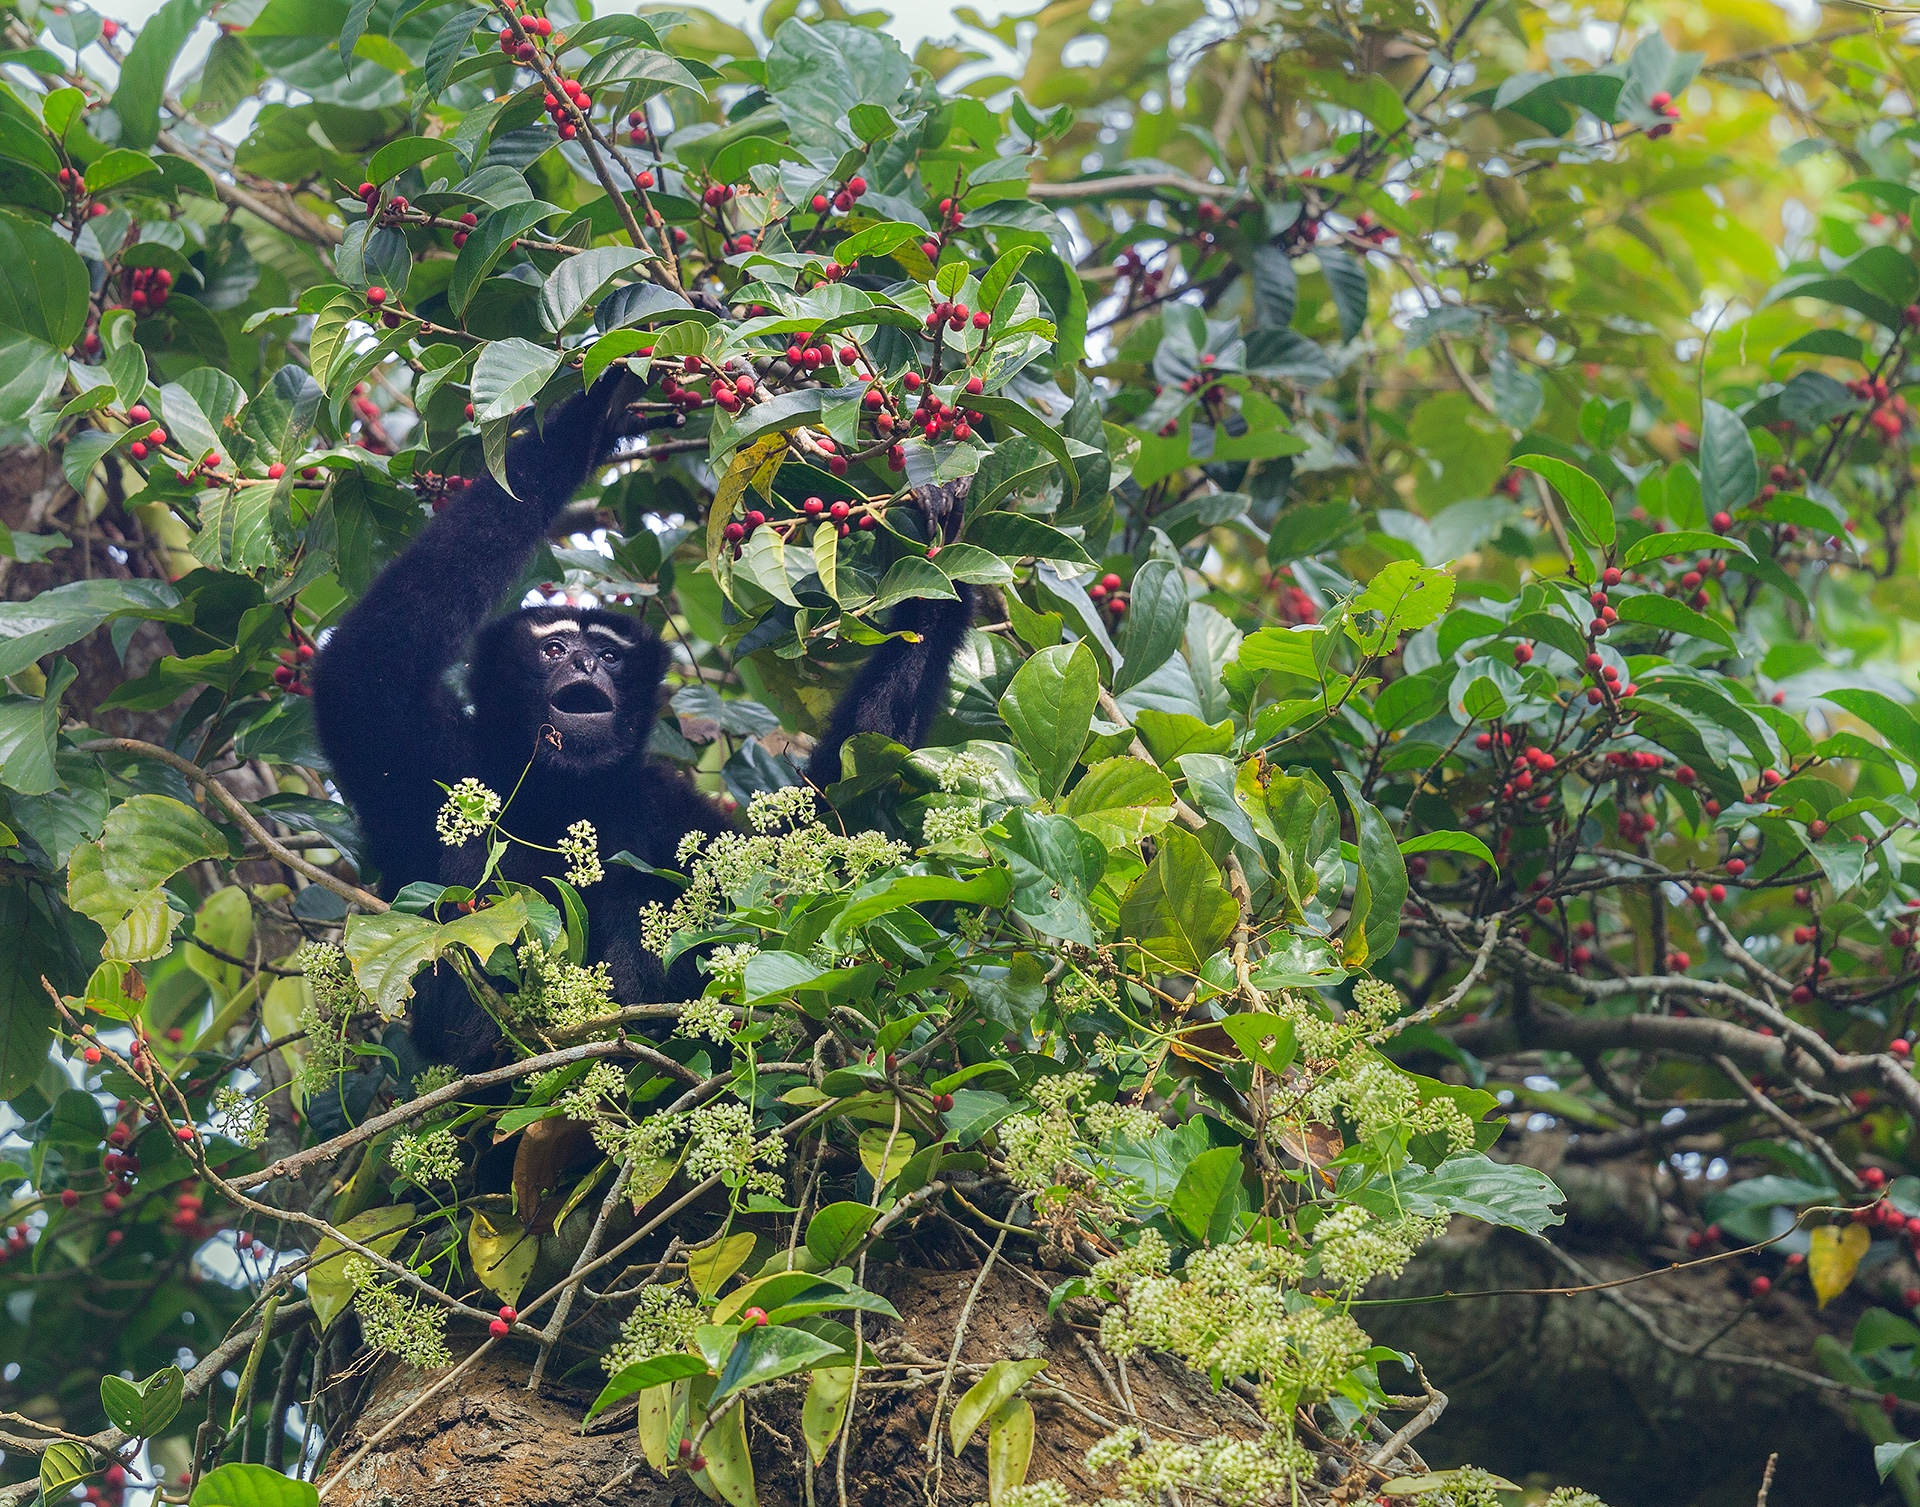 Fruit is a major part of the hoolock gibbon's diet, supplemented by leaves, shoots and flowers. Photo: Arindam Bhattacharya